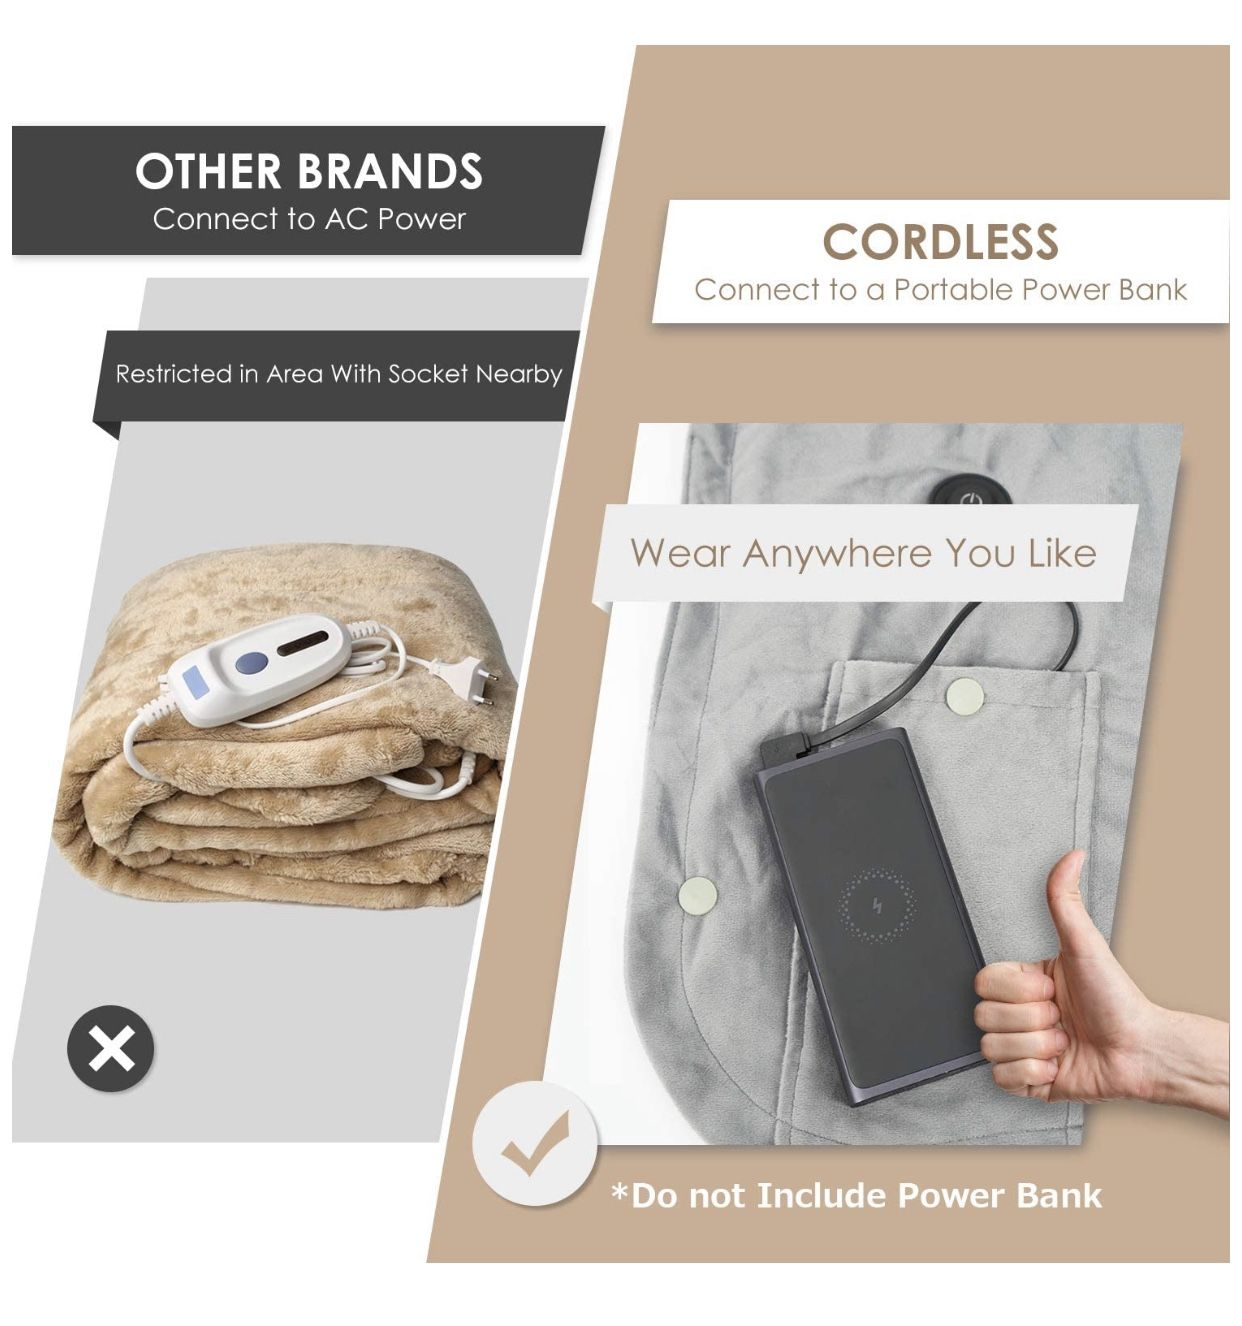 Wearable Electric Blanket, Portable Poncho Wrap, Cordless Rechargeable Heated Shawl Blanket, Super Soft & Warm Fleece, Home Office & Travel Use, Machi